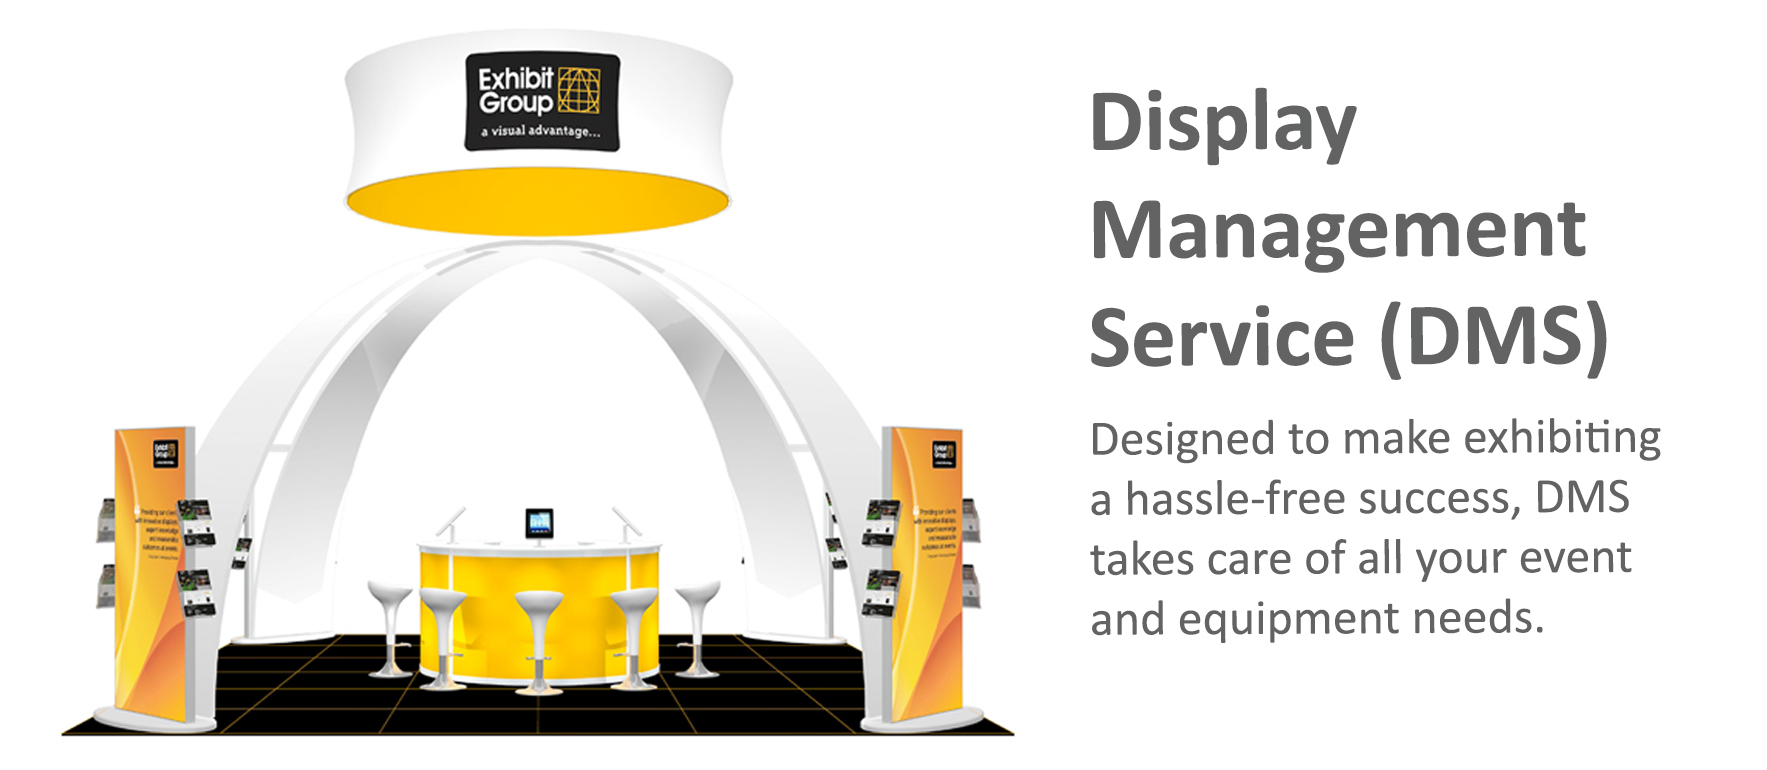 Display Management Service